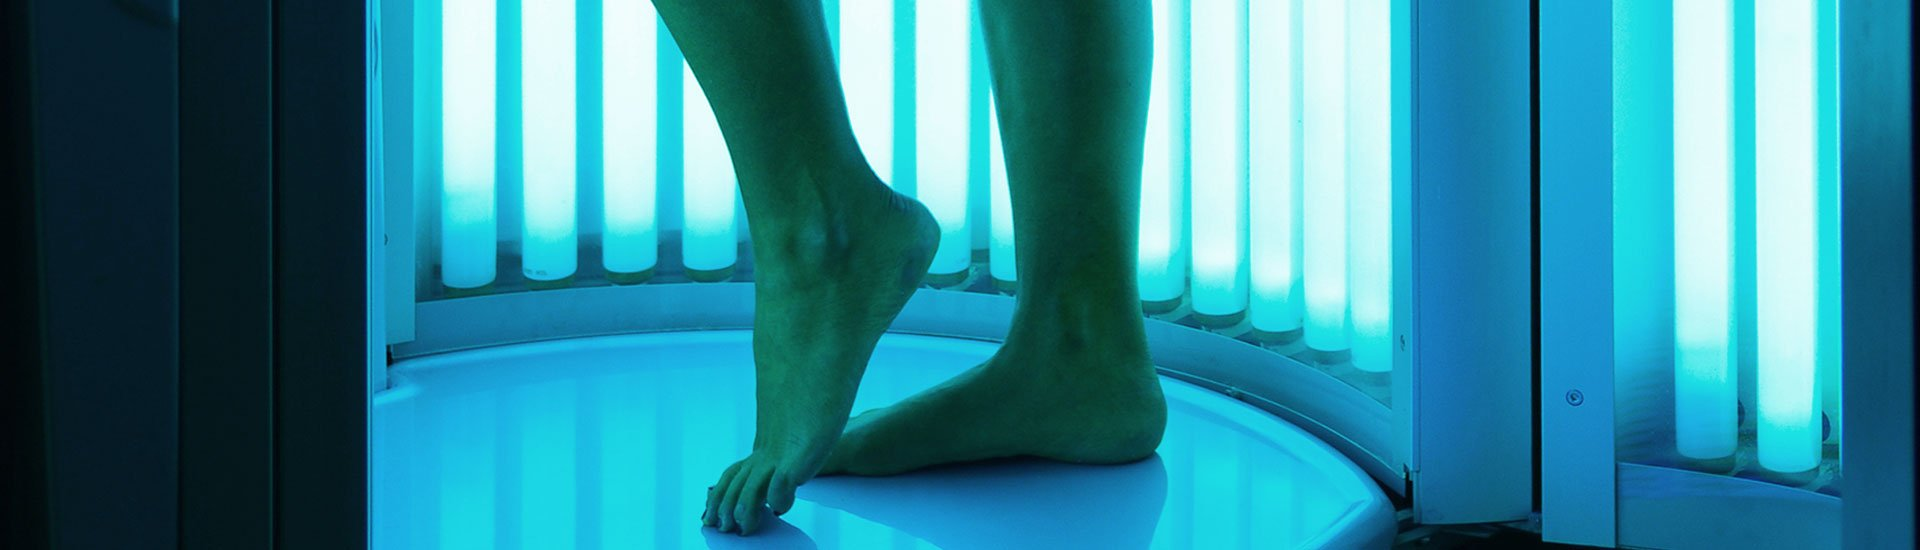 Vertical tanning booth